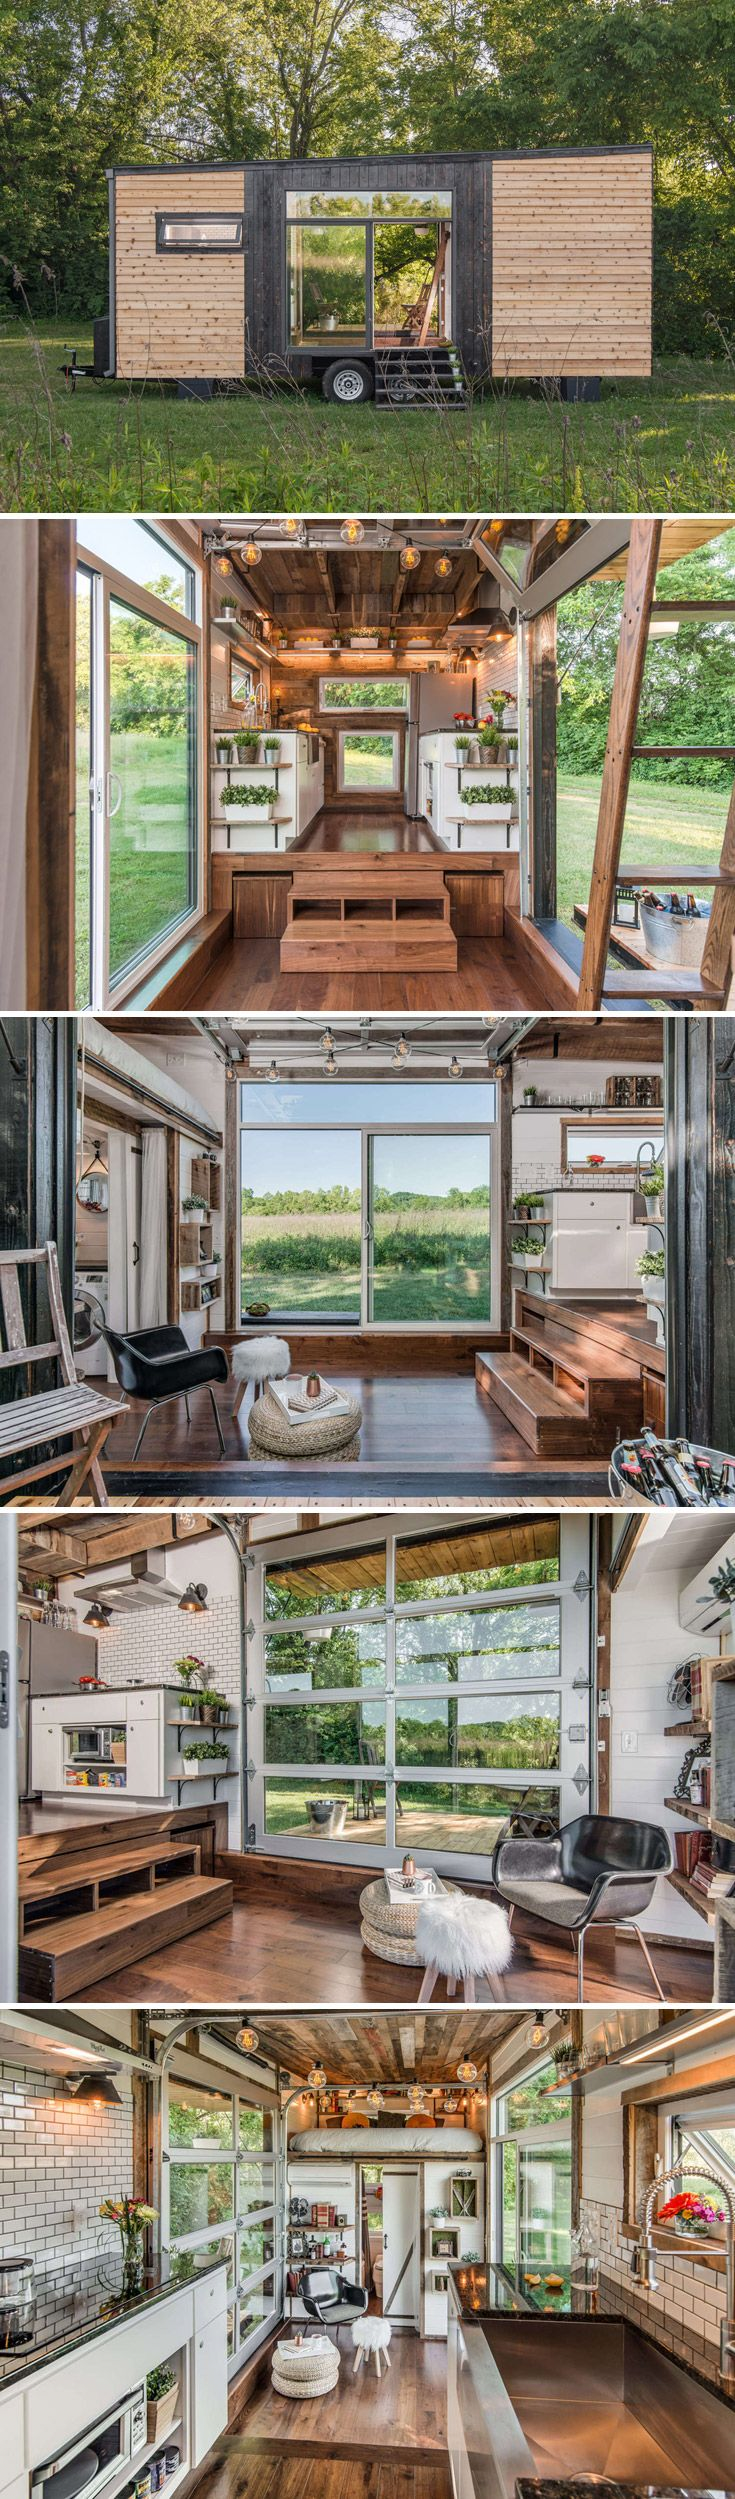 View toward kitchen the alpha tiny home by new frontier tiny homes - Alpha By New Frontier Tiny Homes